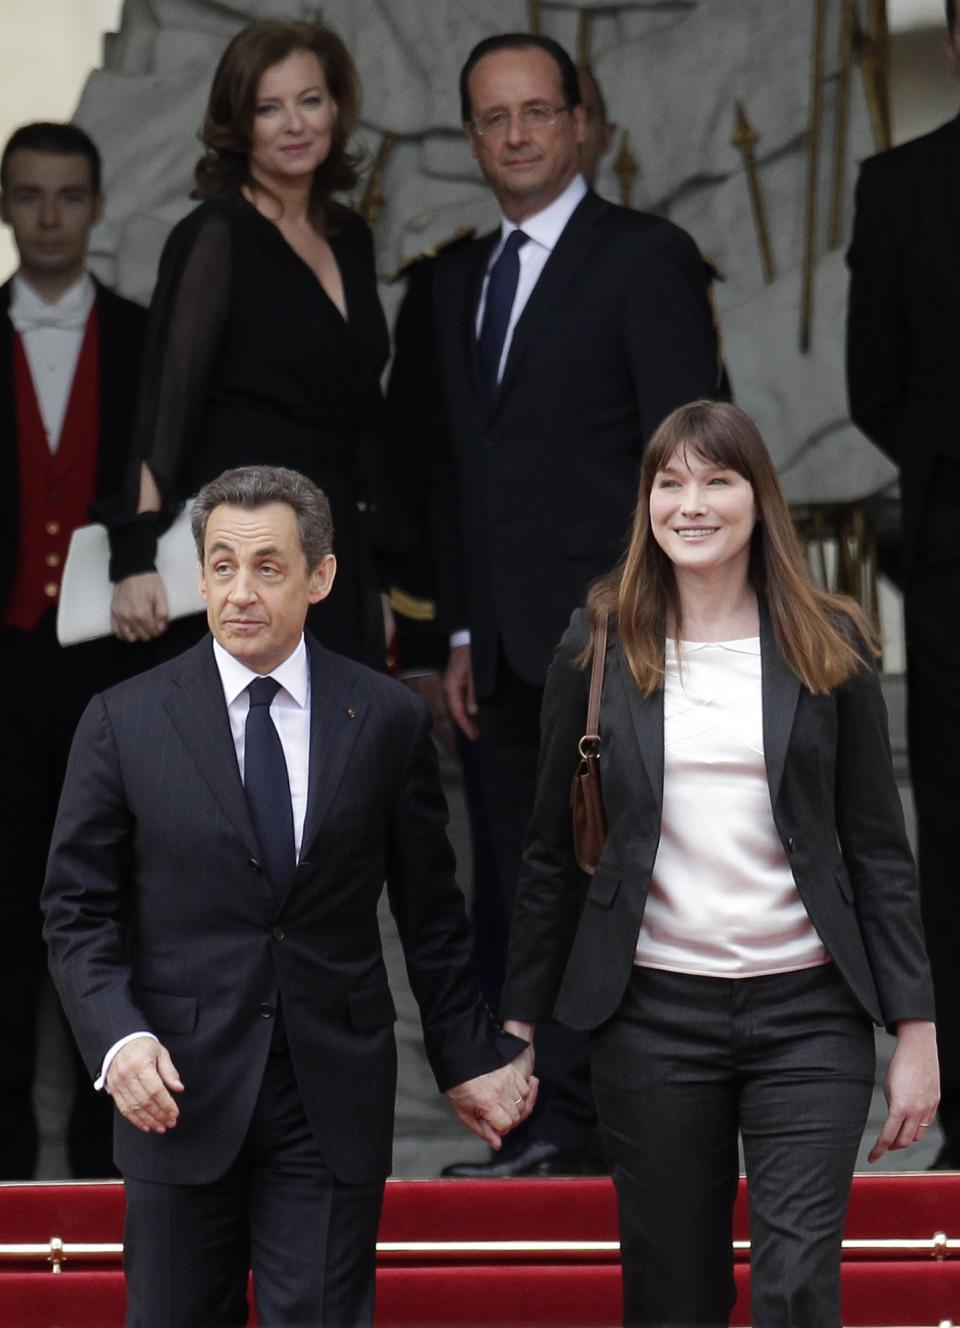 Outgoing French President Nicolas Sarkozy and his wife Carla Bruni-Sarkozy leave the Elysee Palace after the handover ceremony while new President Francois Hollande, top right, and his companion Valerie Trierweiler look on, Tuesday, May 15, 2012 in Paris.  (AP Photo/Michel Euler)